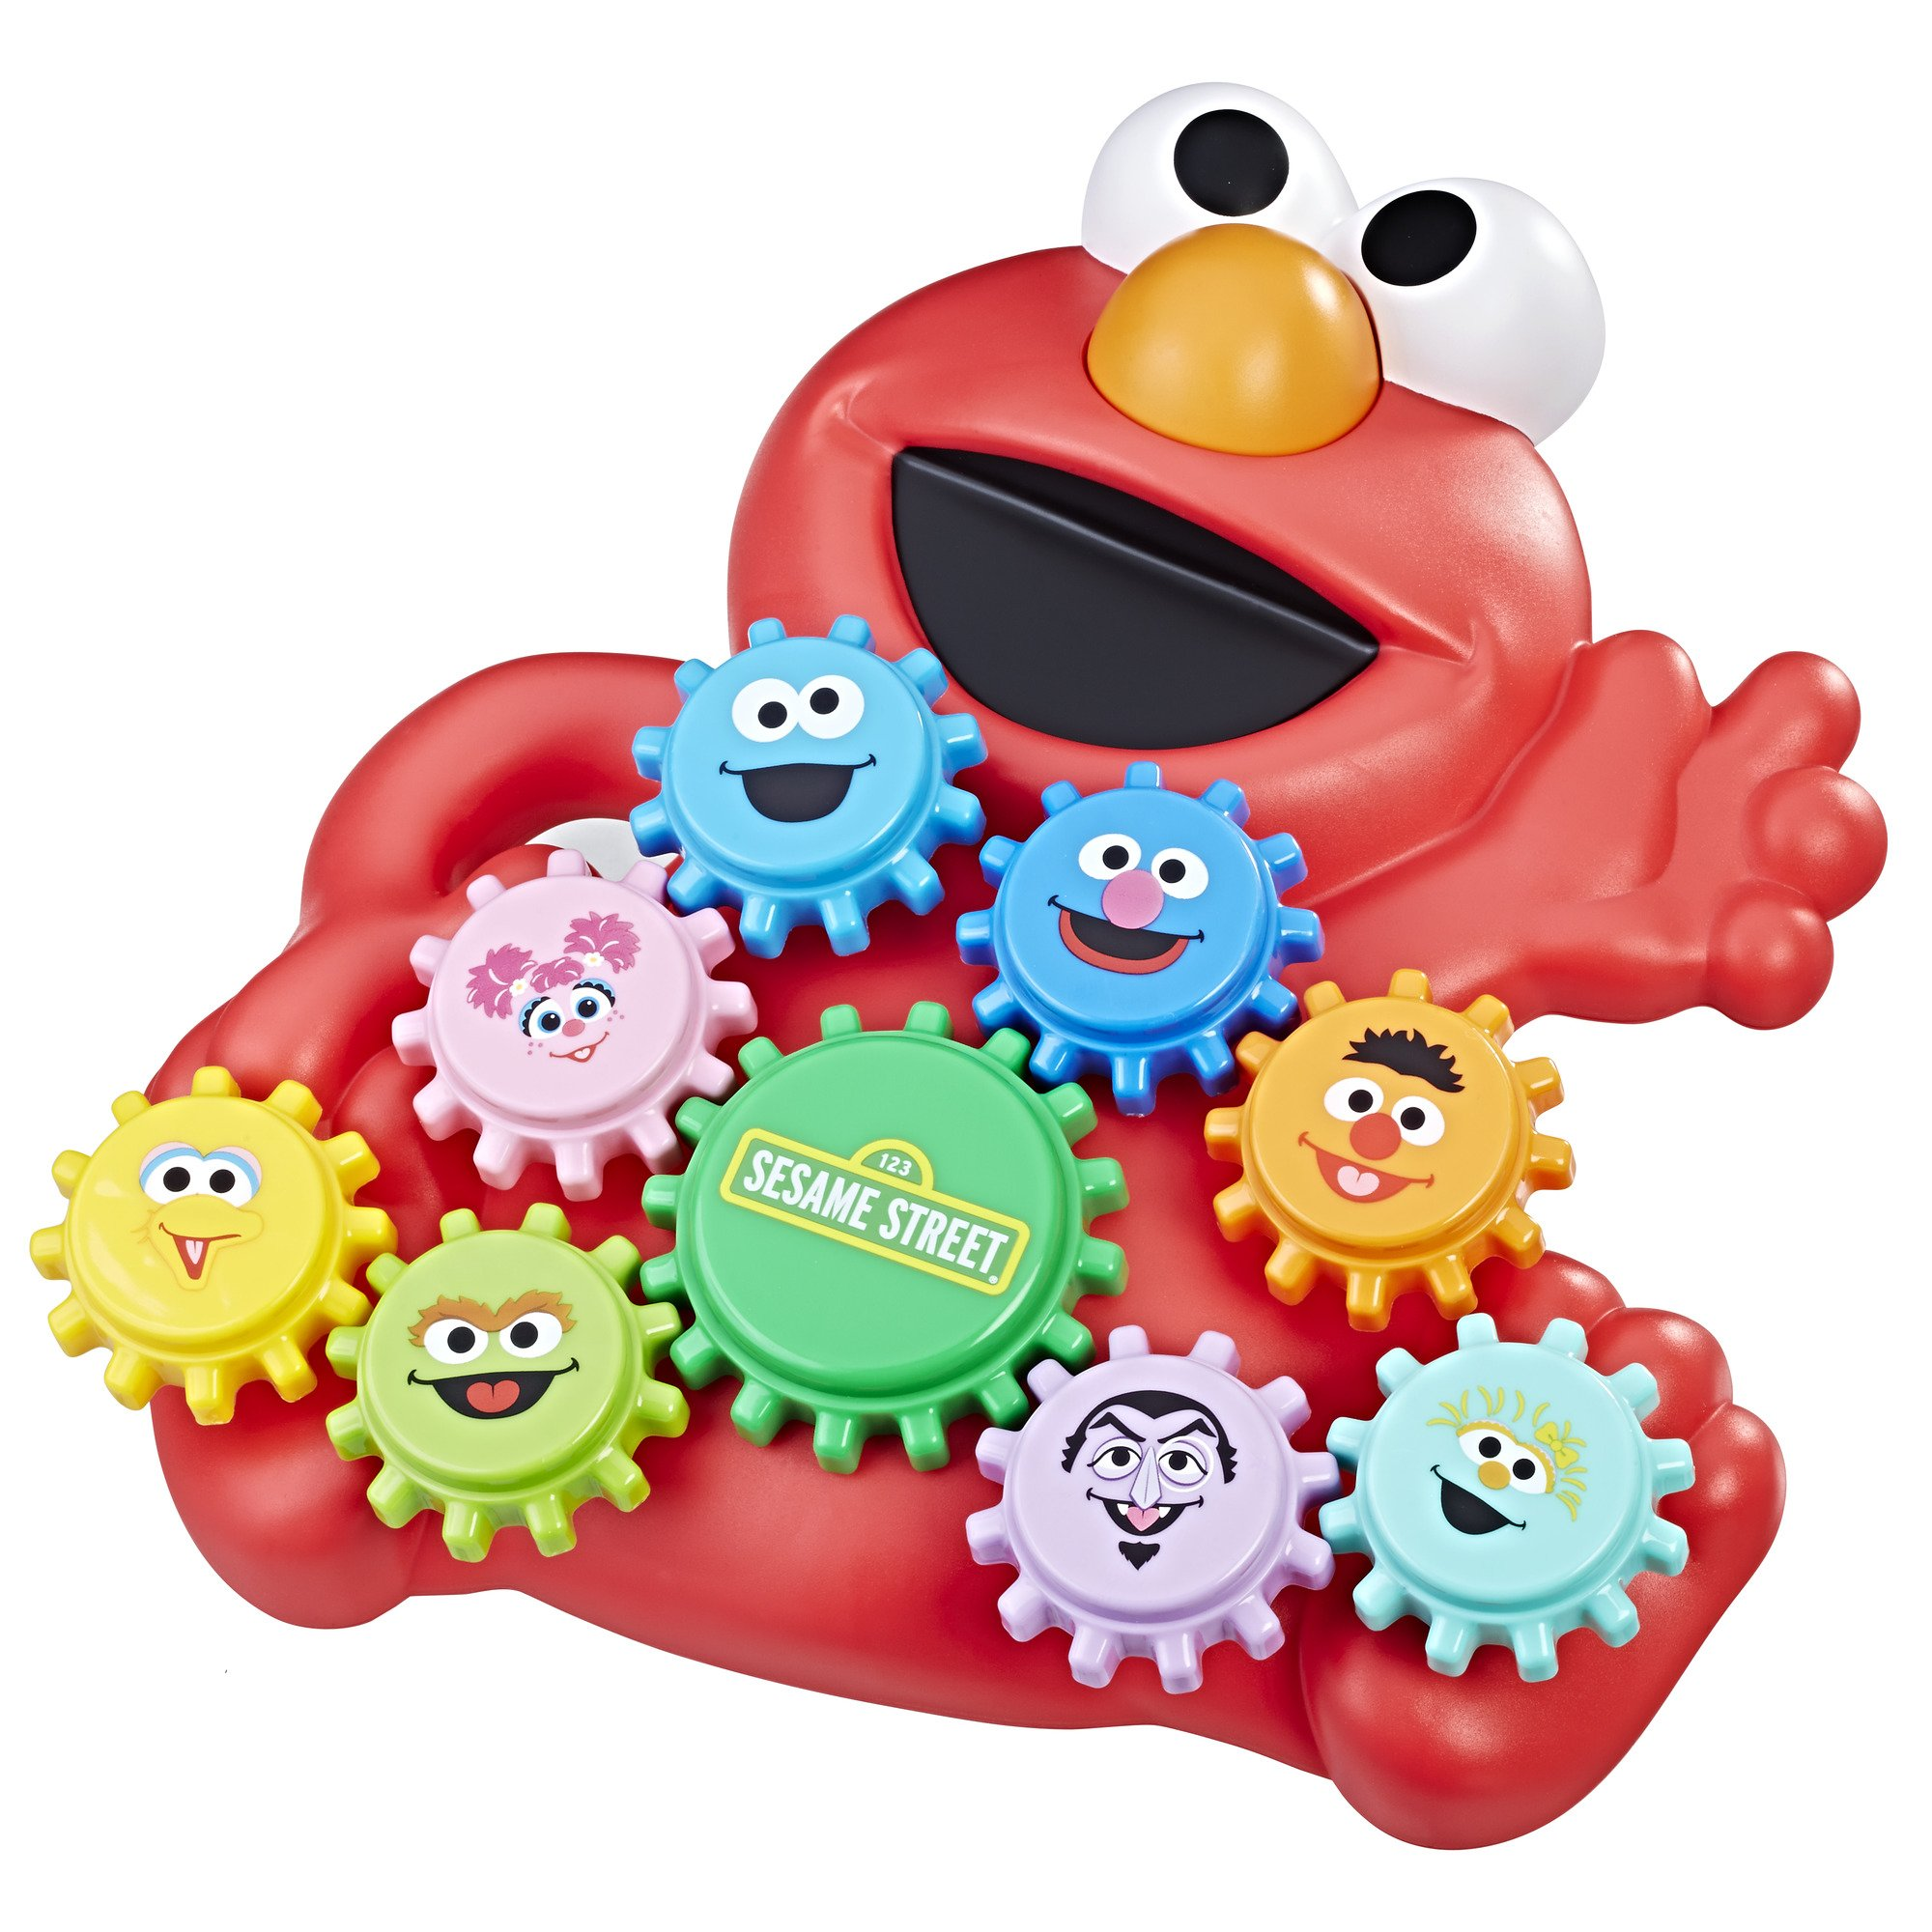 Friends Sesame Street Elmo and Friends Gear Play Kids Children Toy